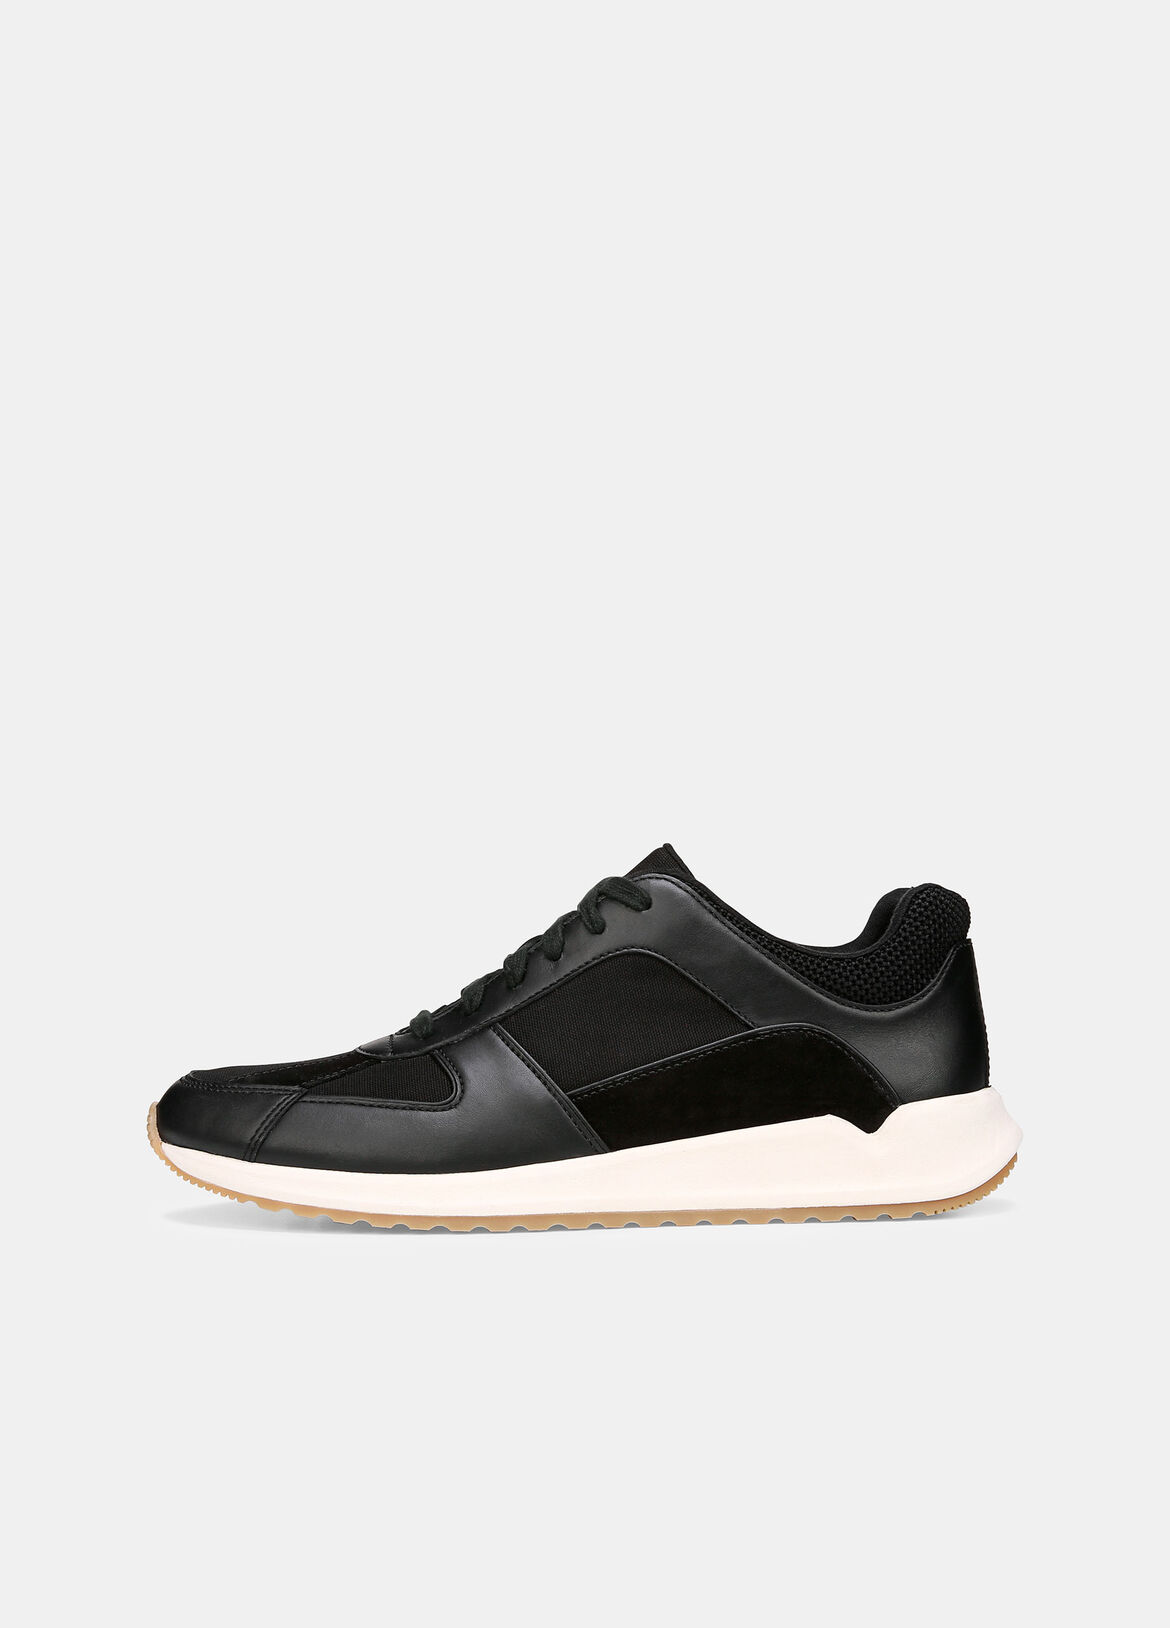 These sneakers are made from a combination of leather canvas in a low-top silhouette. They're fashioned on rubber soles for comfort and grip.